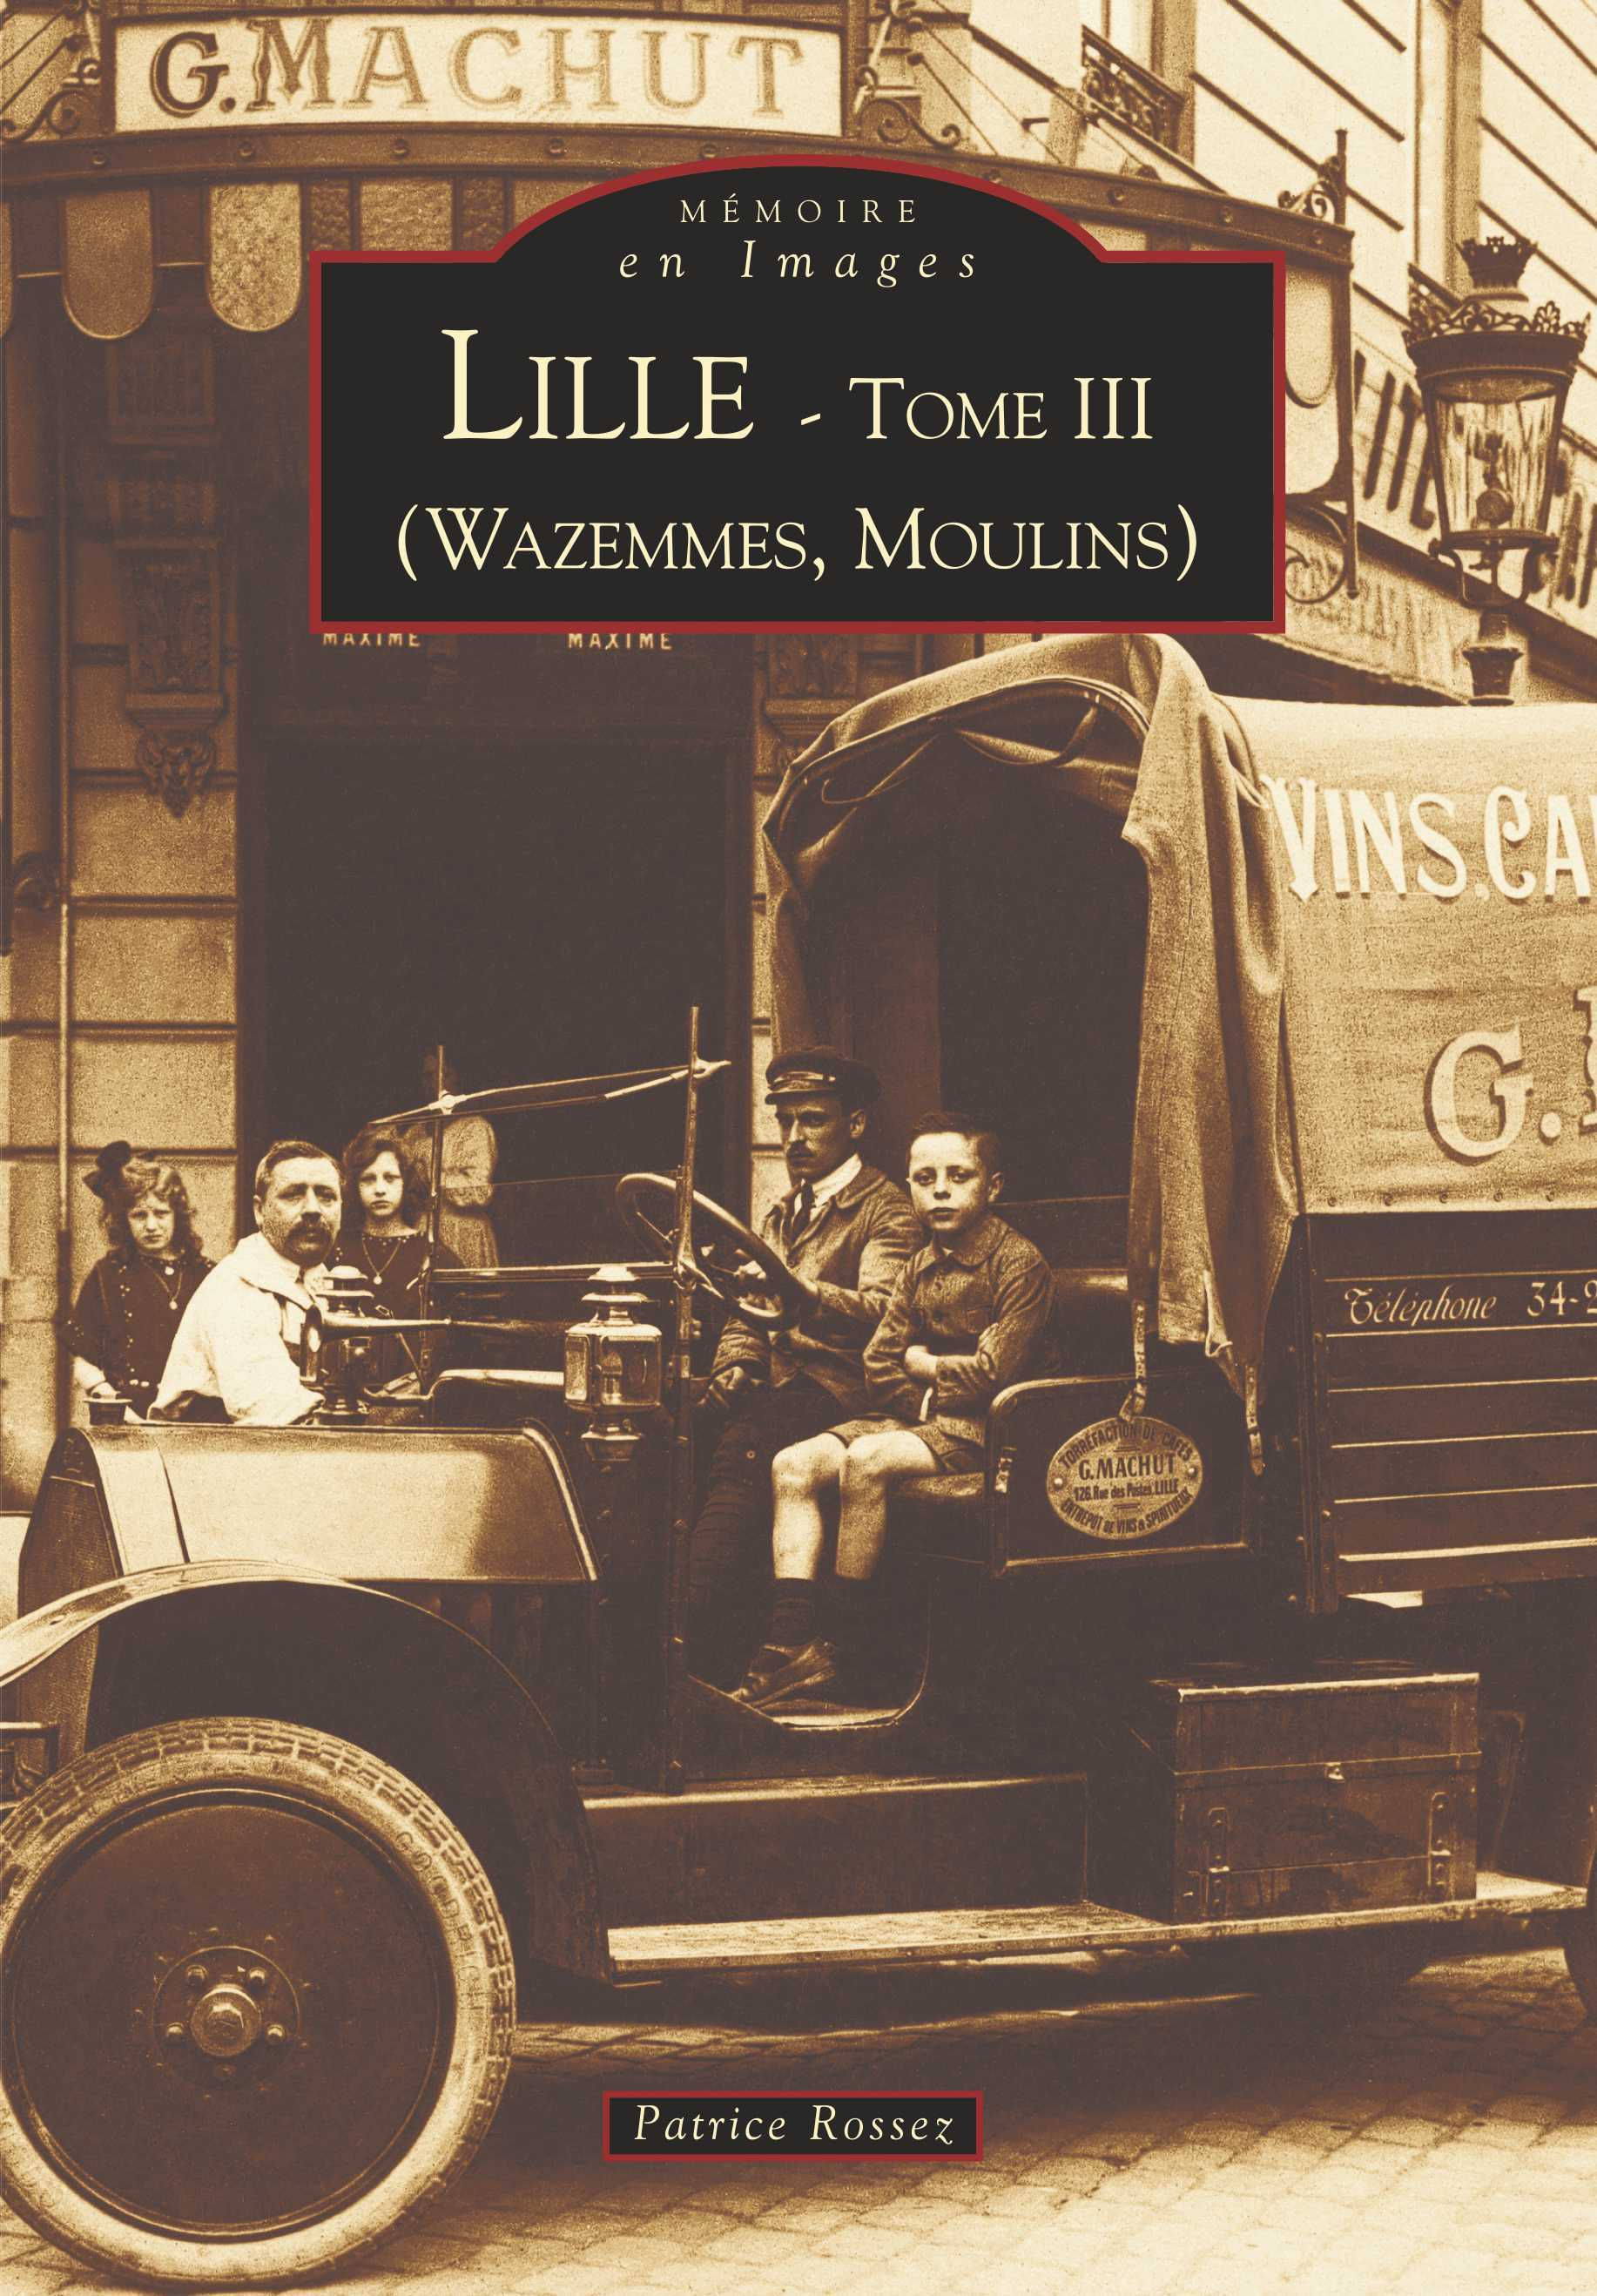 LILLE - TOME III